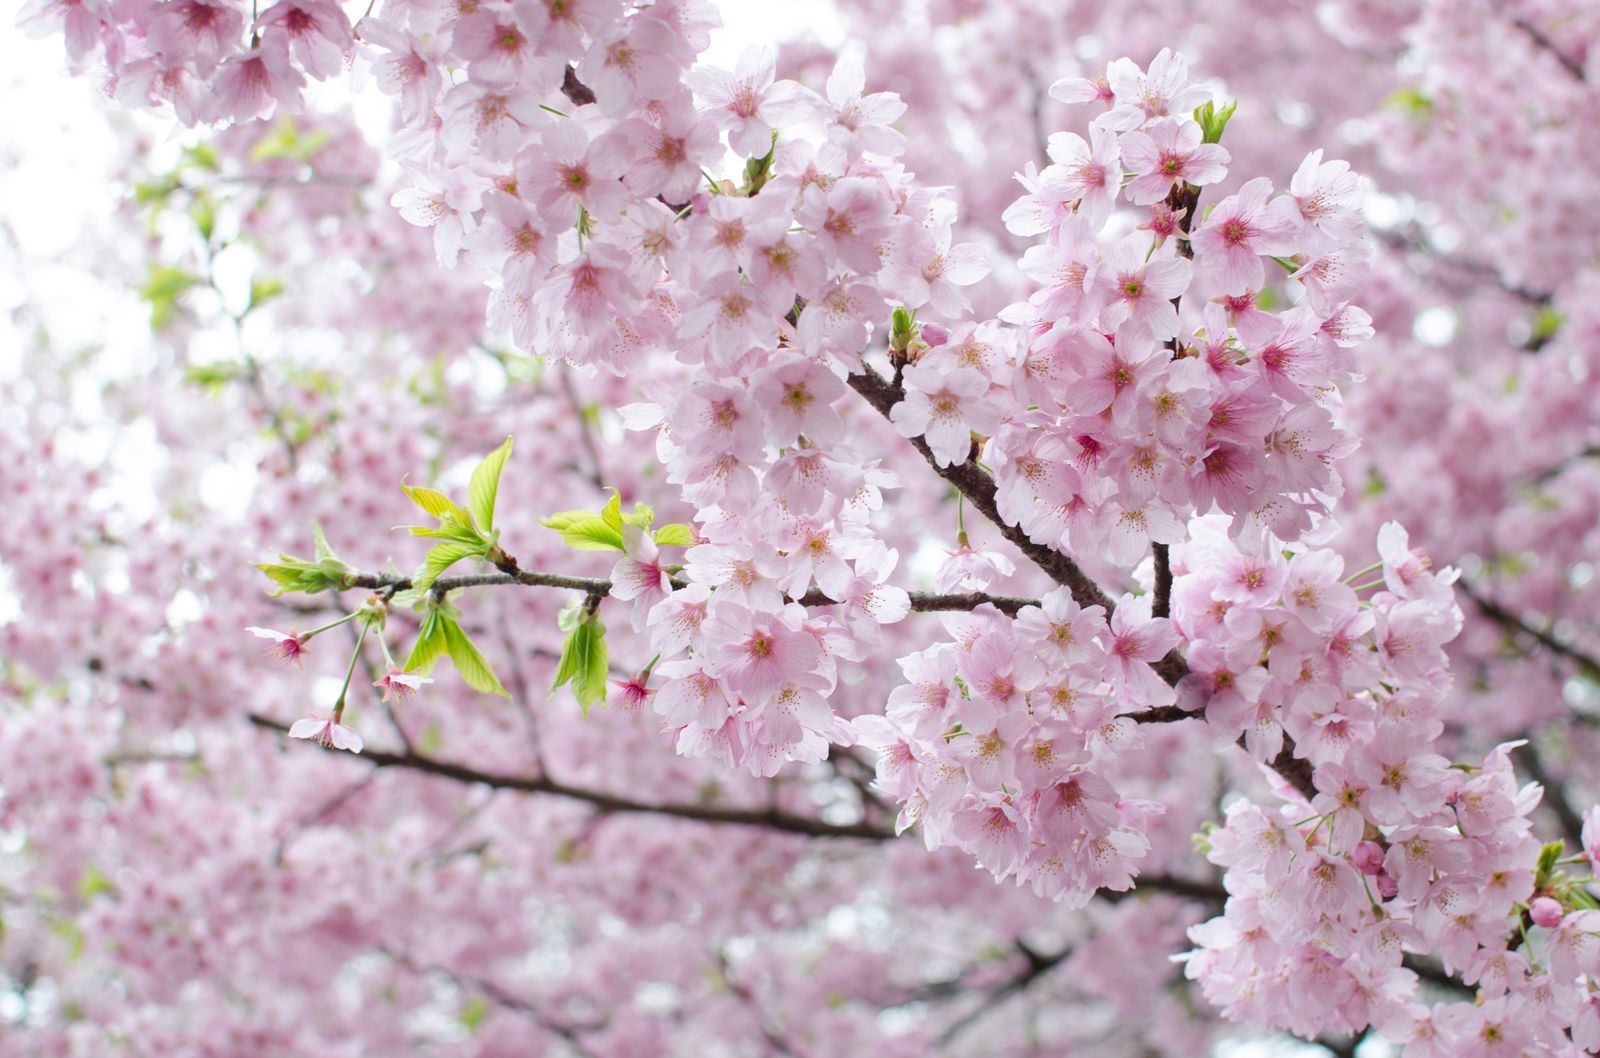 Cherry Blossom Tree Facts That You Definitely Never Knew Before Cherry Blossom Flowers Japanese Cherry Blossom Cherry Blossom Tree